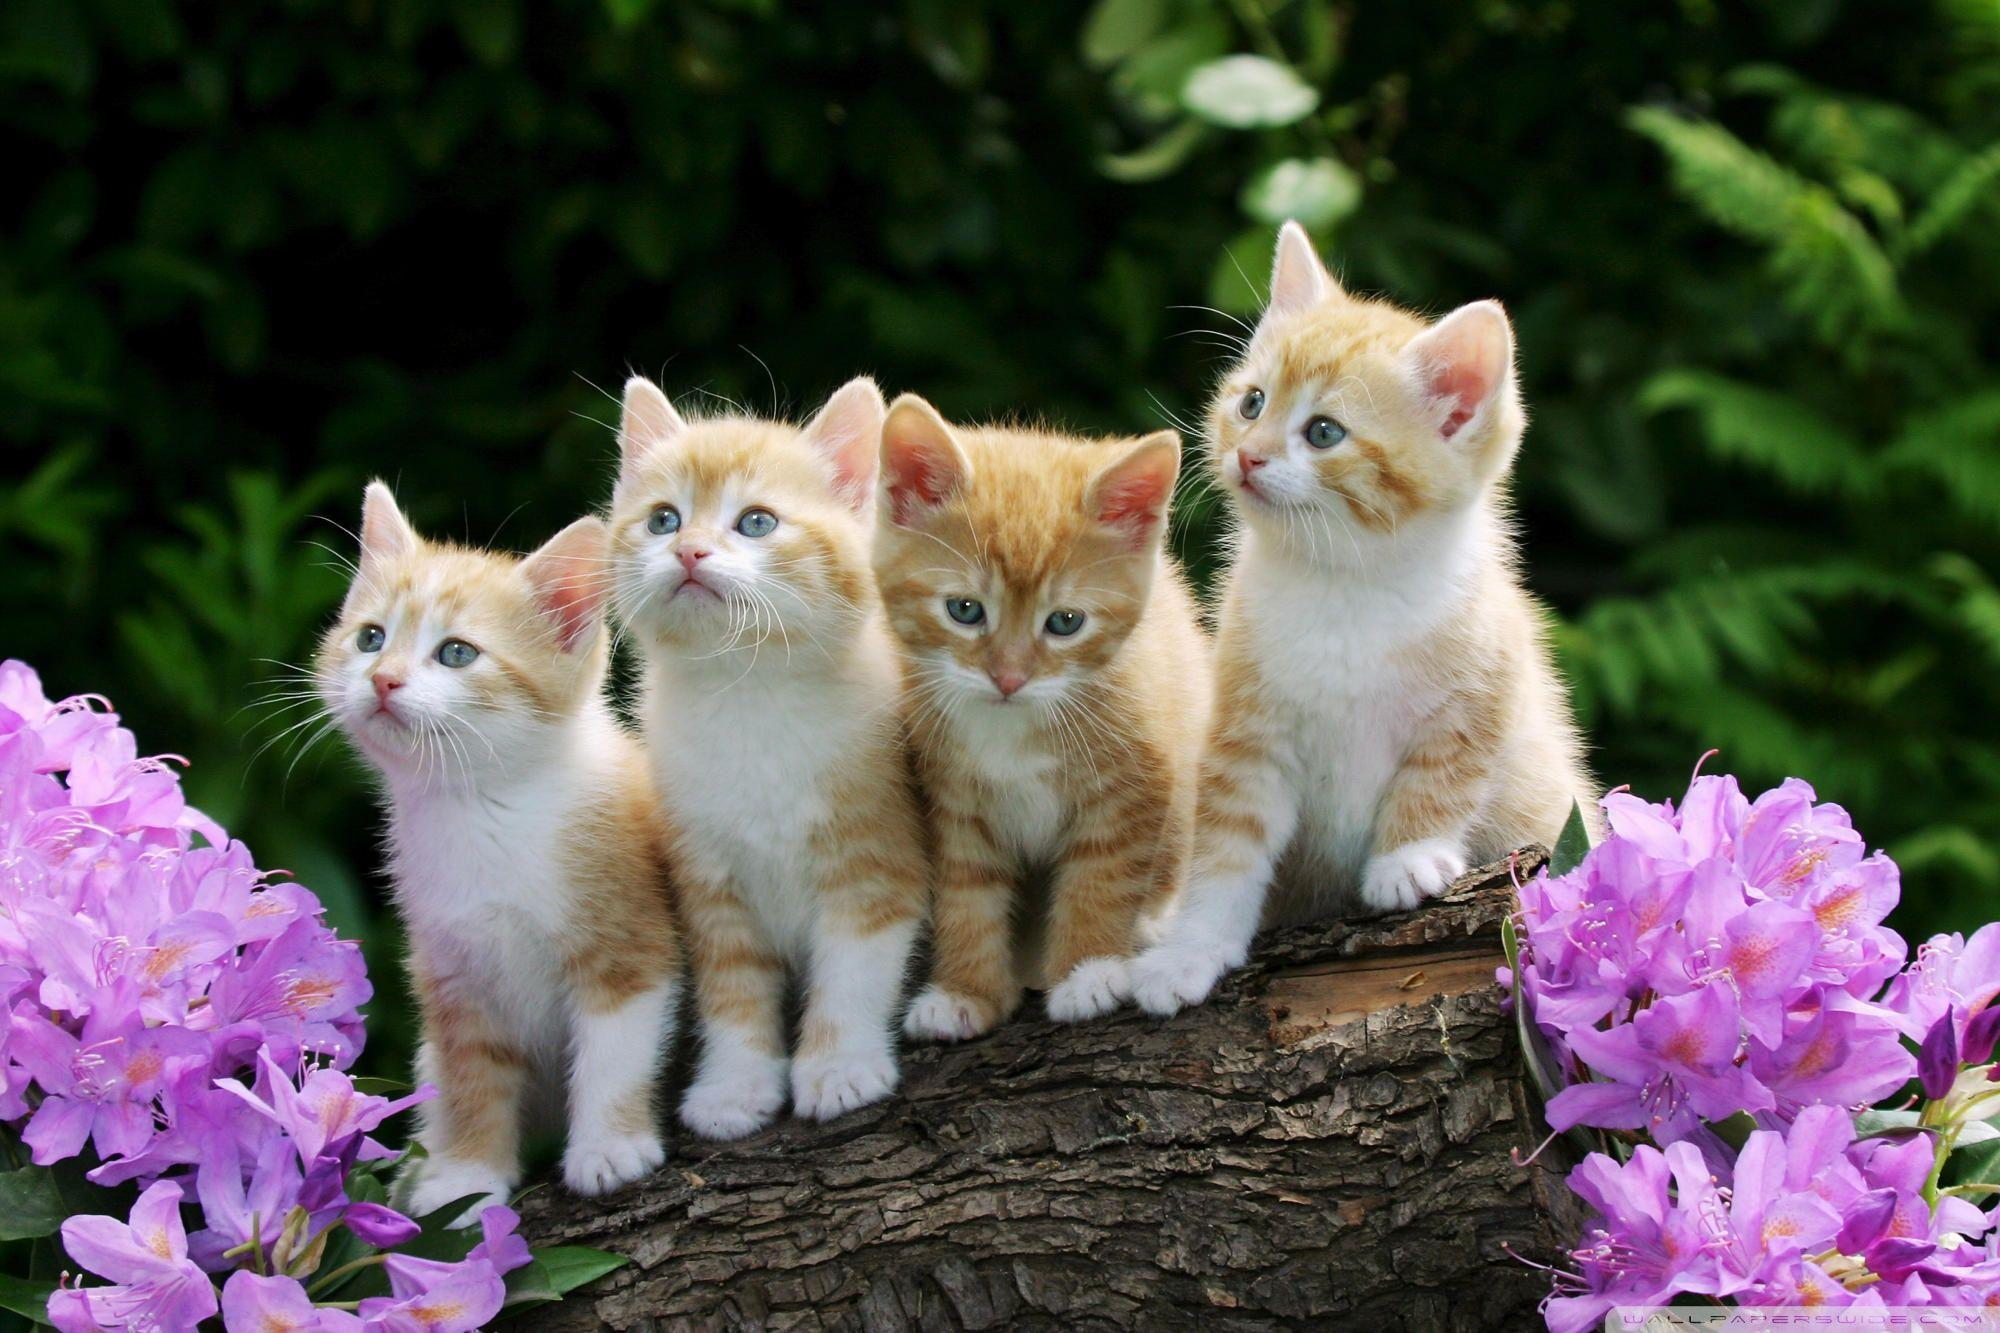 35 Trends For Cute Cat Images For Whatsapp Dp Lee Dii